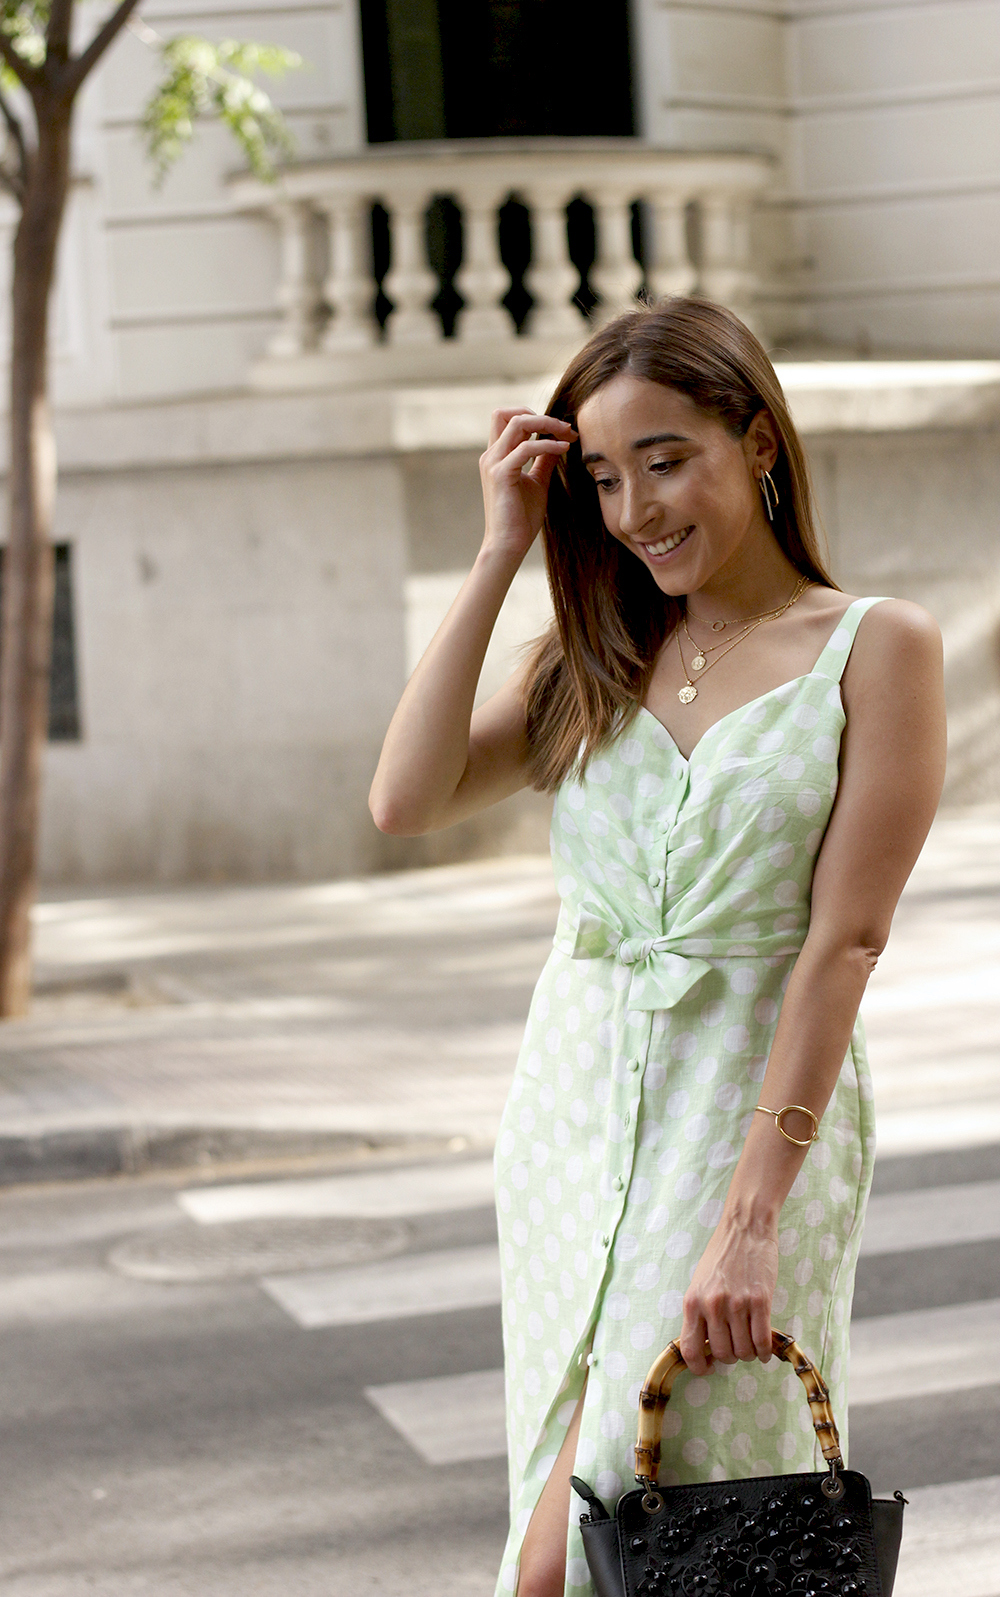 linen dress with polka dots uterqüe street style summer outfit 20196